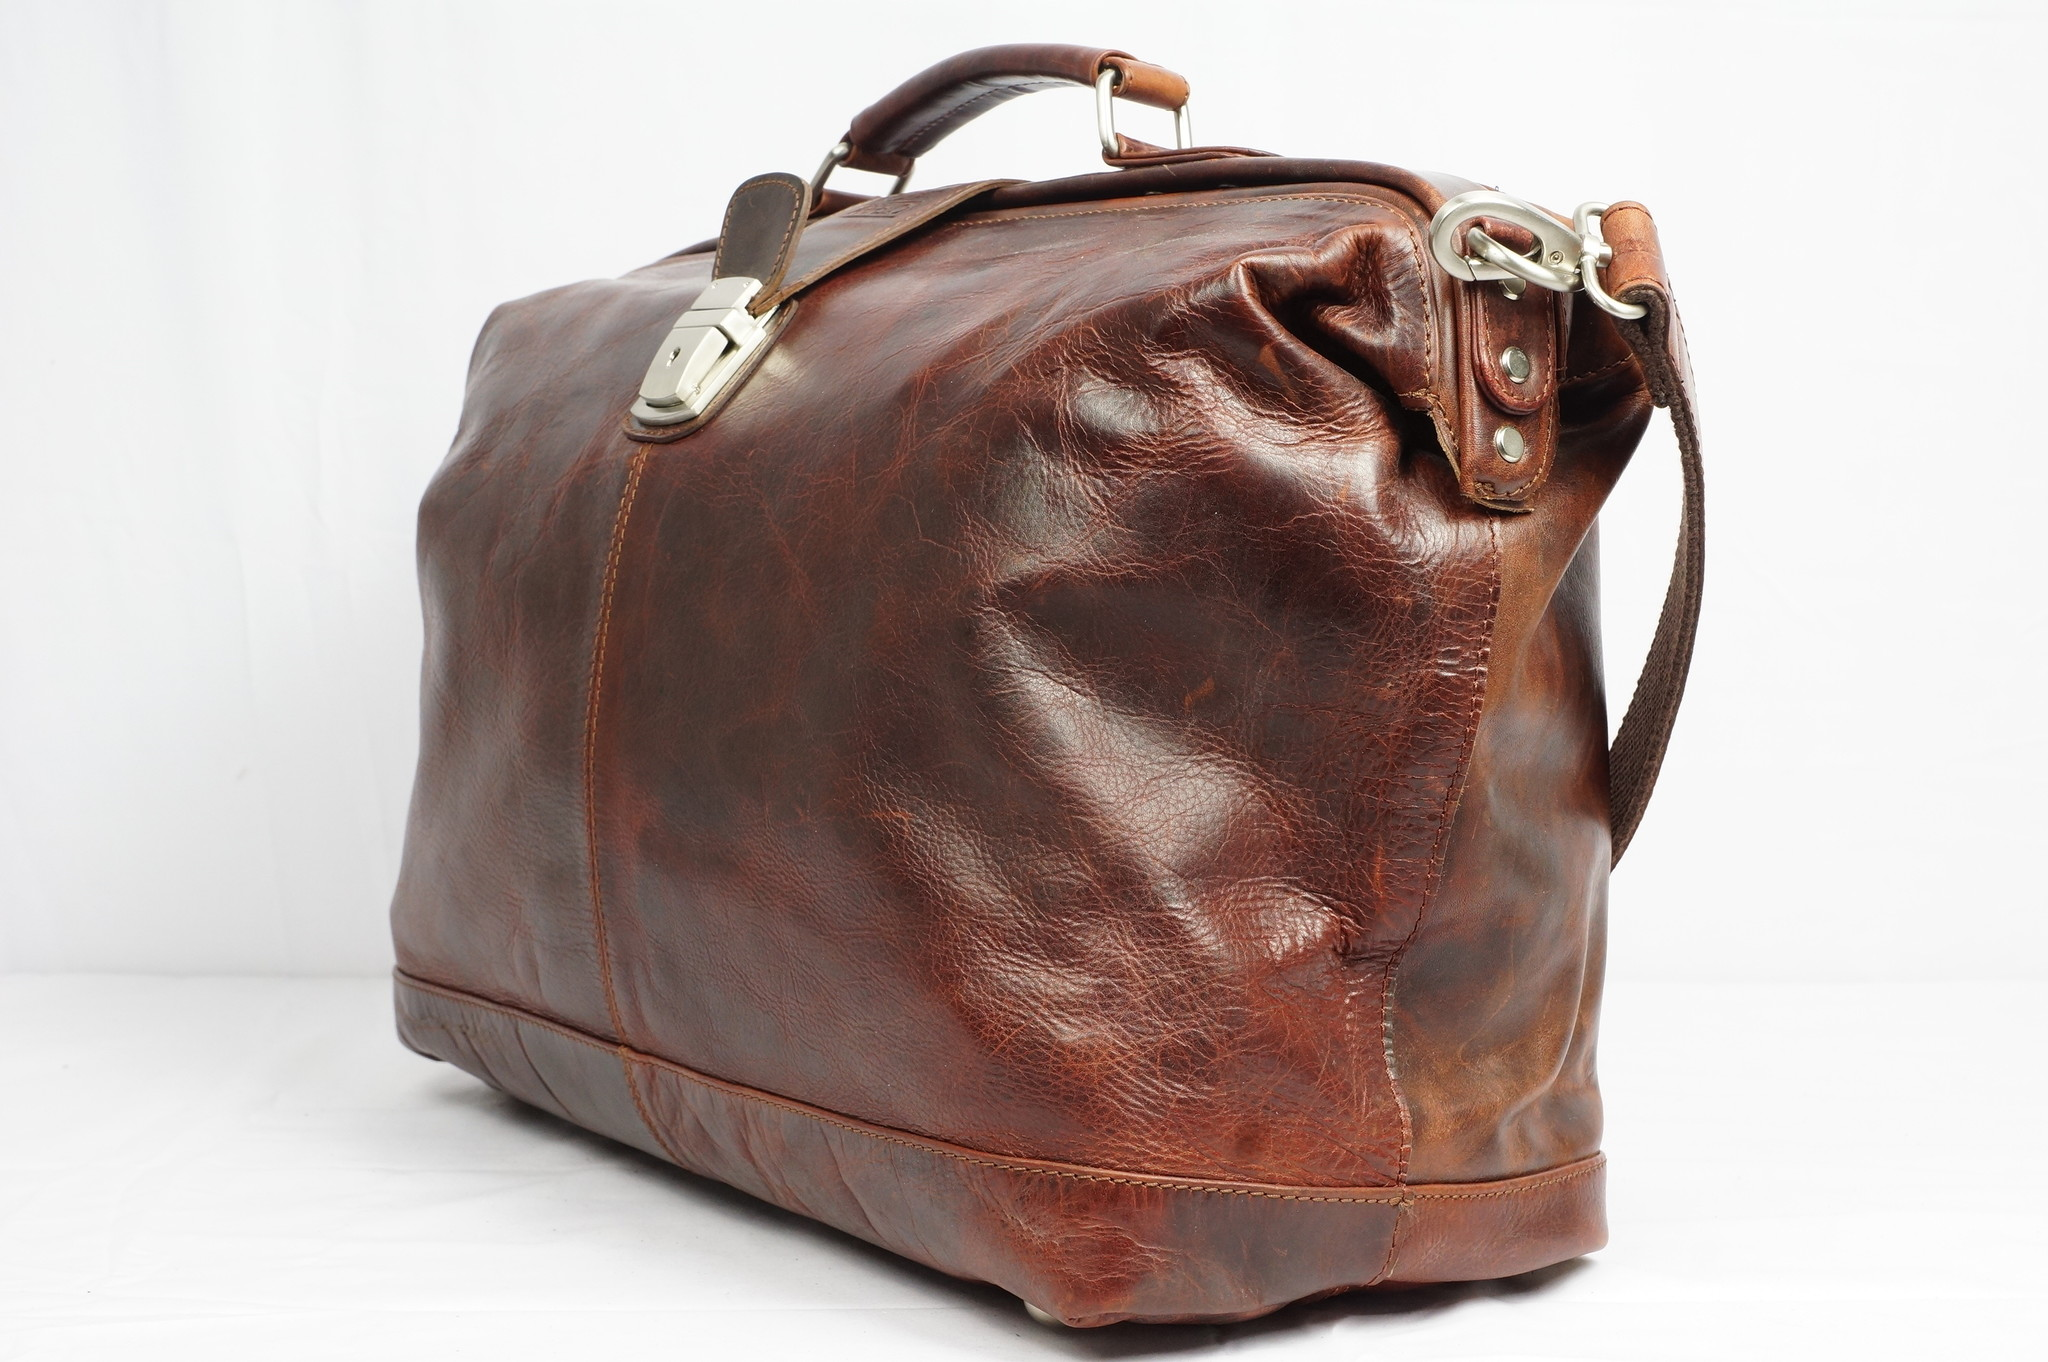 Arpello Old School doctor bag